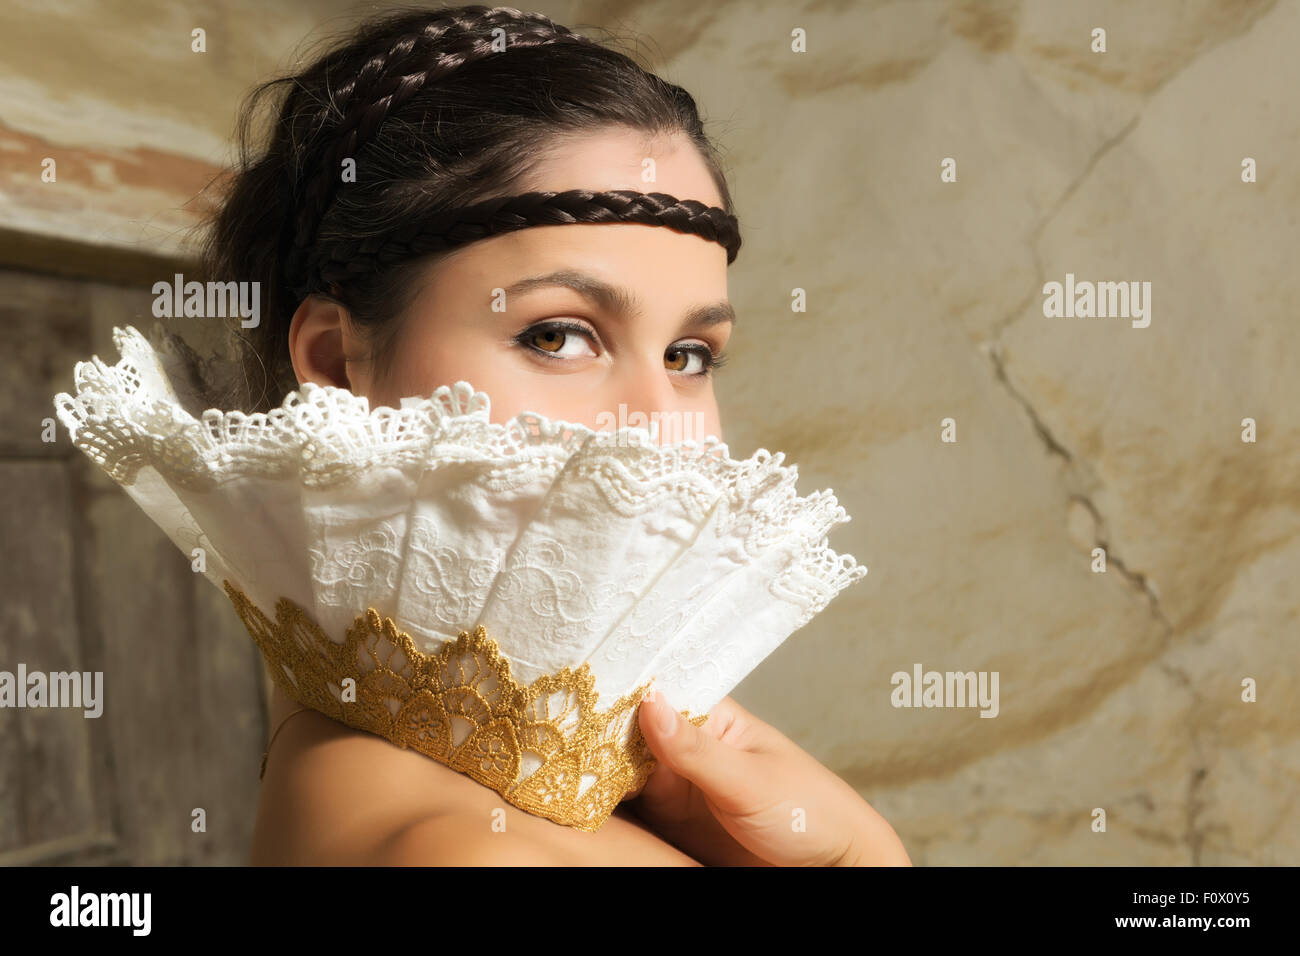 Fine art renaissance portrait of a woman wearing a lace collar in the style of the old masters - Stock Image